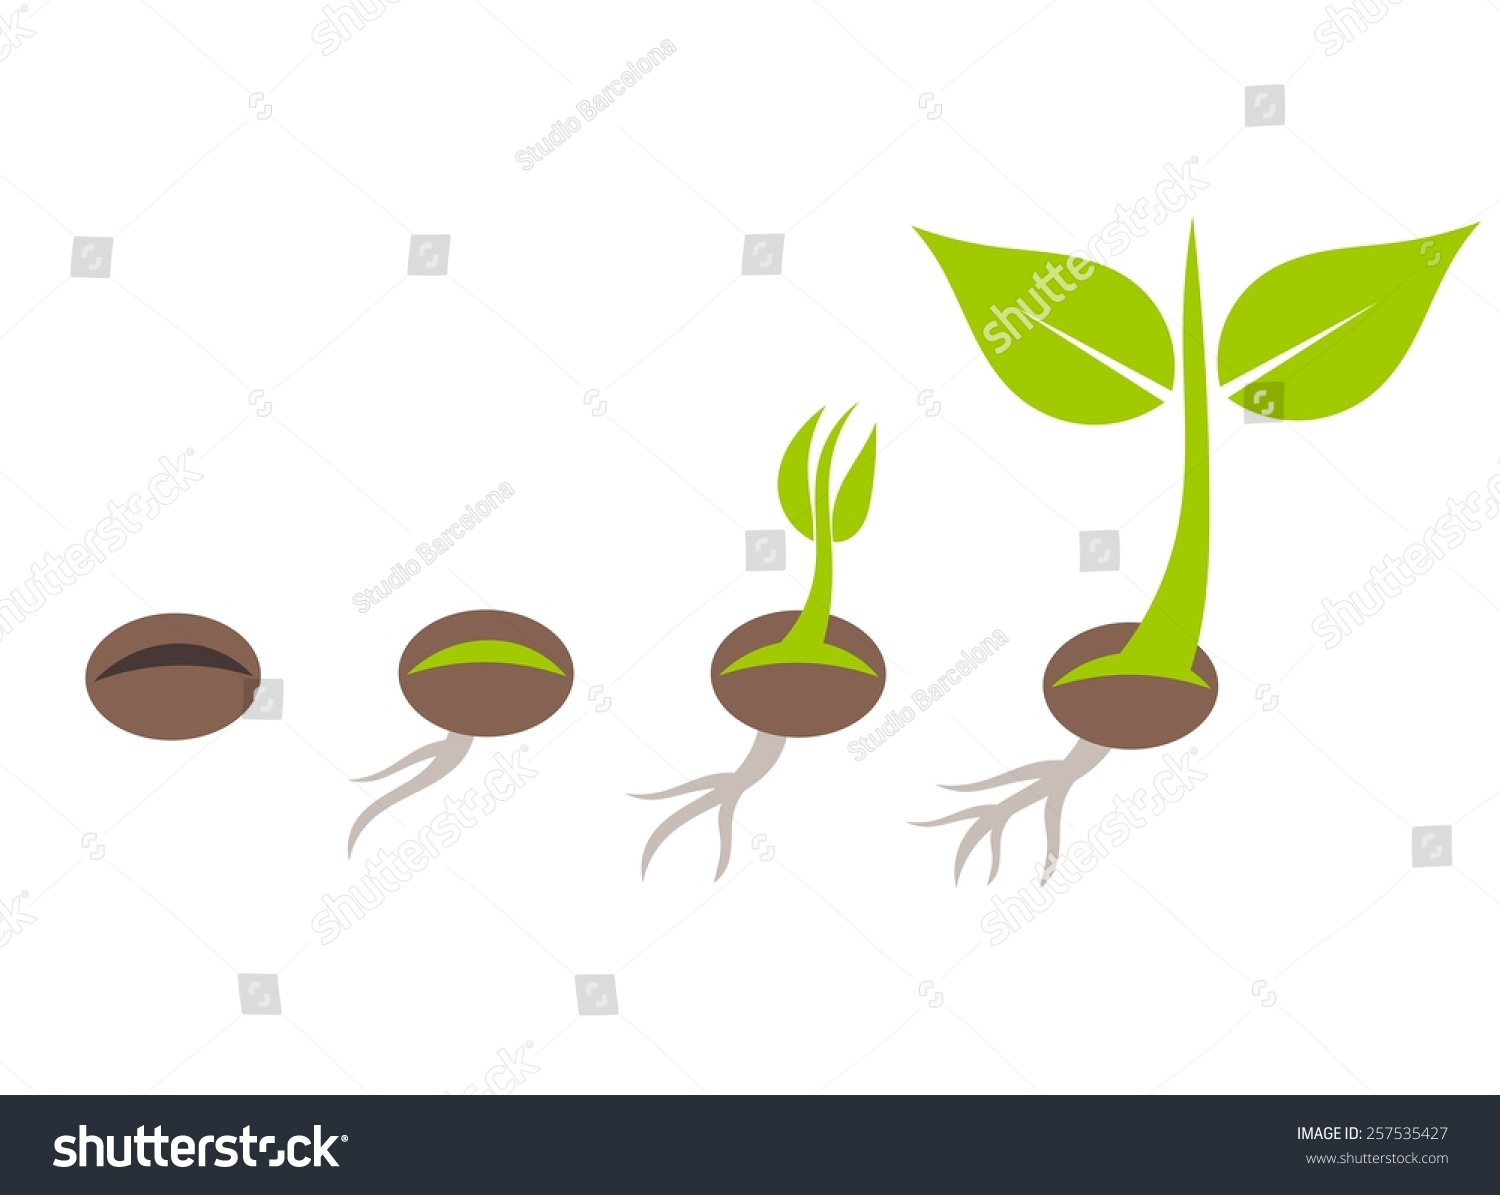 Plant Seed Germination Stages Vector Illustration Stock